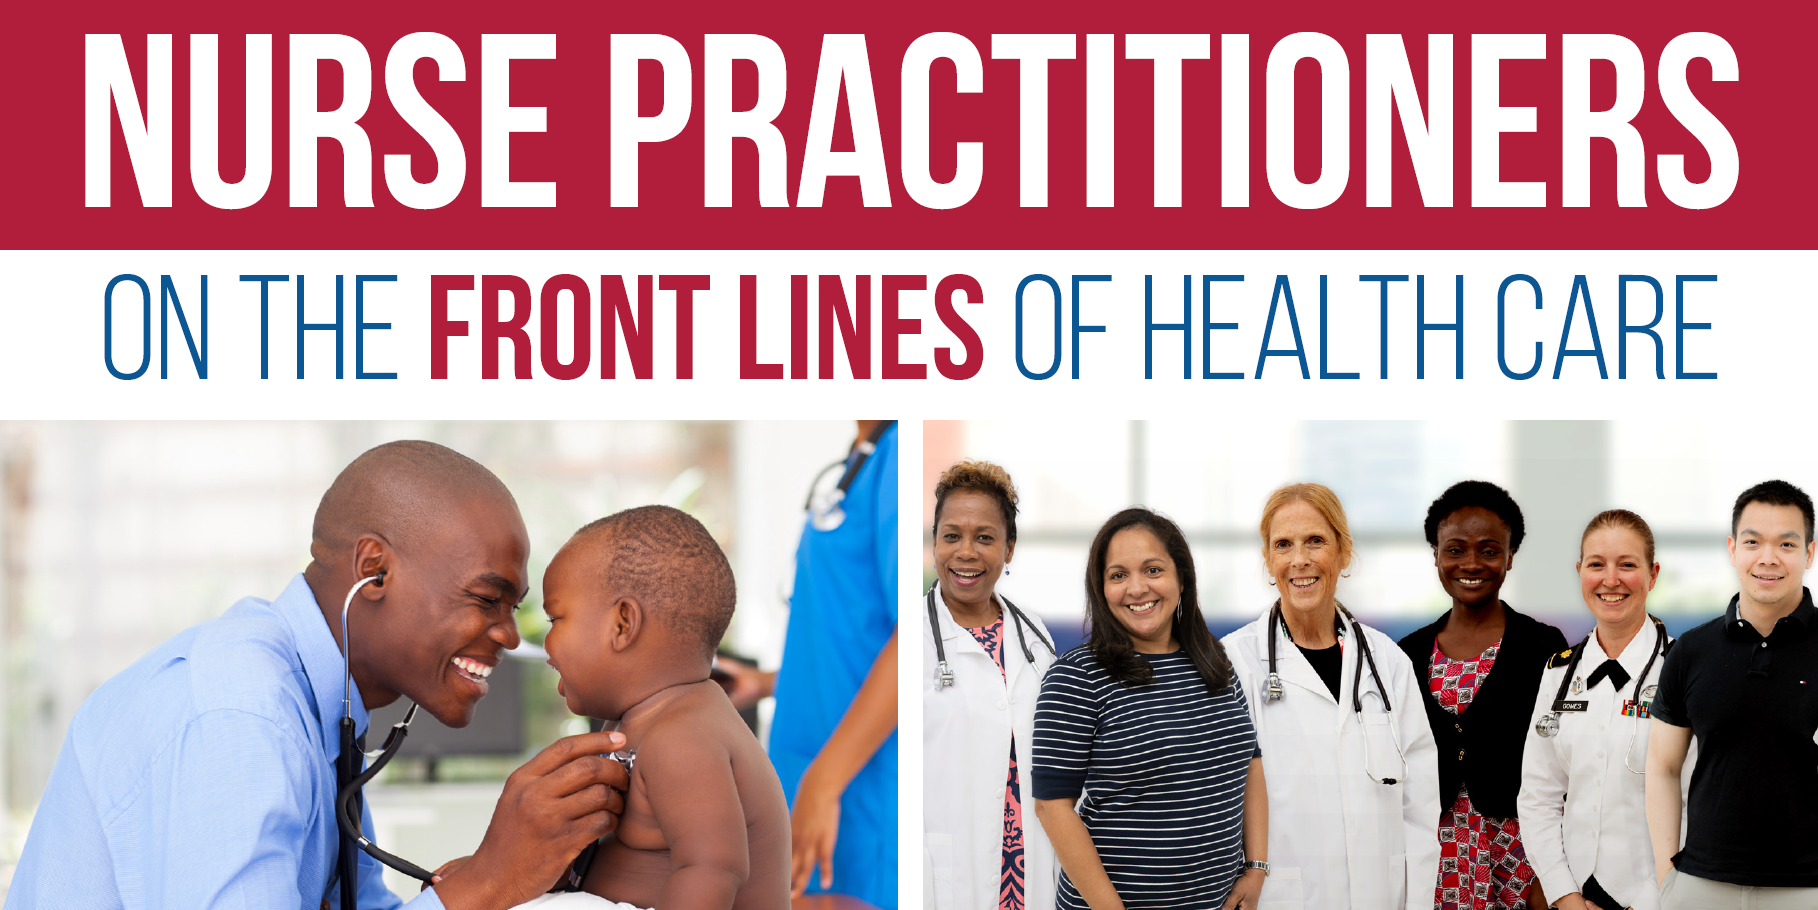 Collage of male NP with an infant and a group of diverse NPs on the font lines of health care